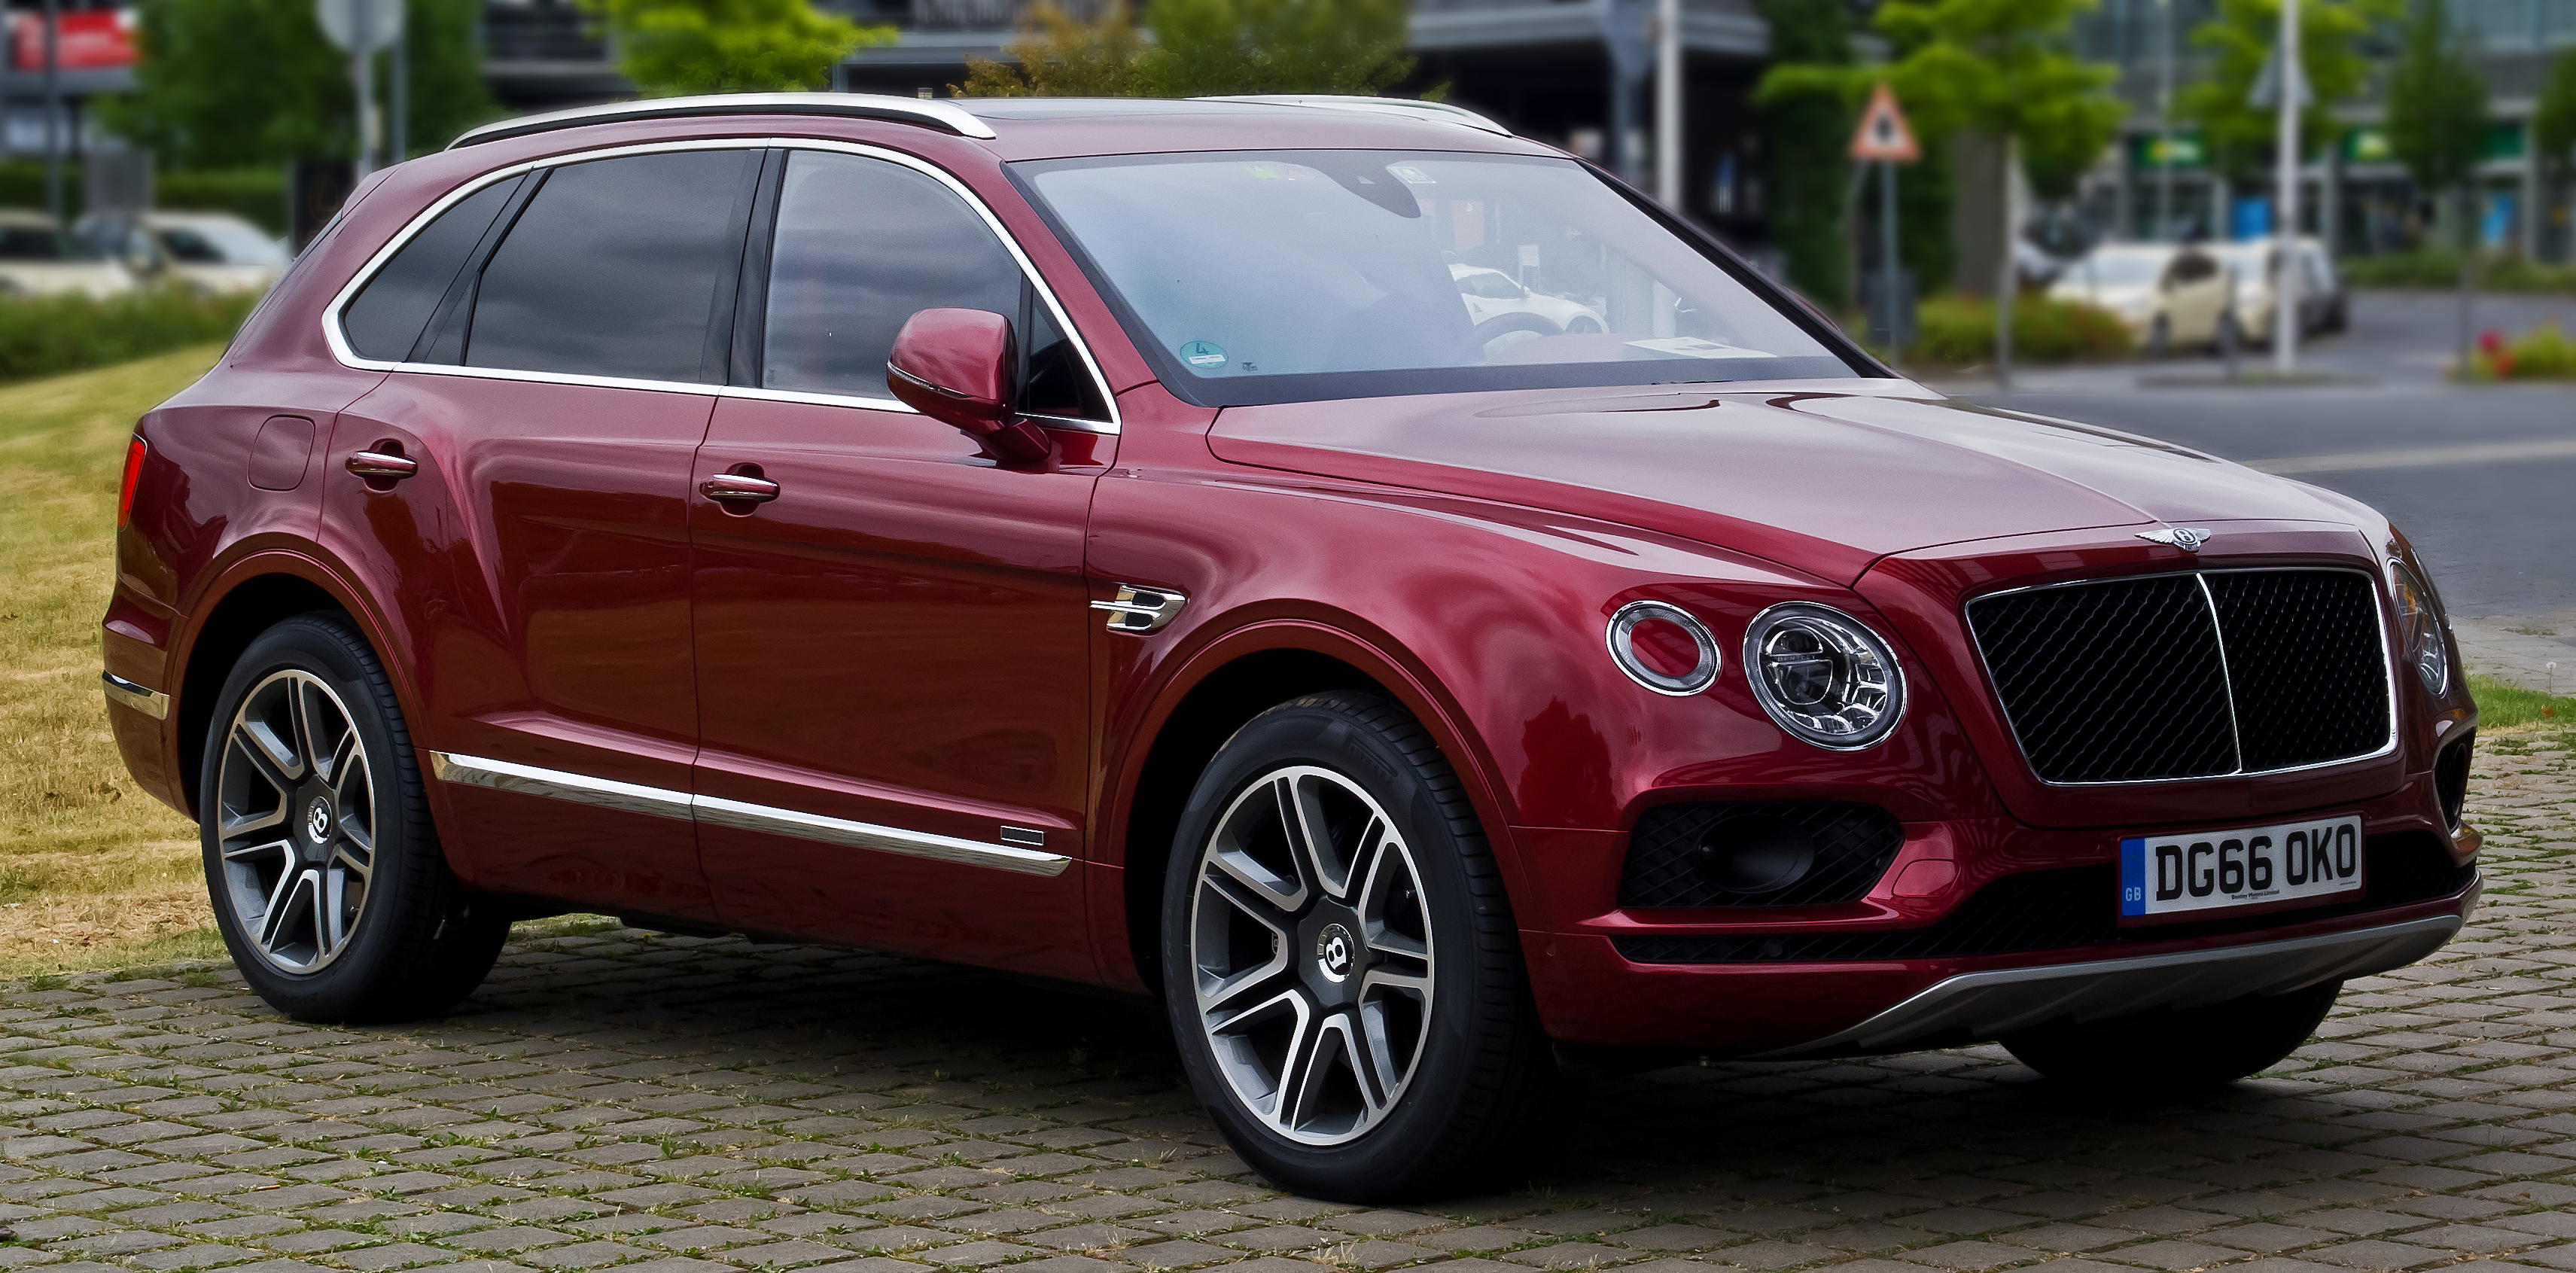 journal accessory fishing com bentayga suv james fly ultra ne ultimate july bentley the jameslipman lipman time mulliner luxury amongst iceland photo by seat plus angling price